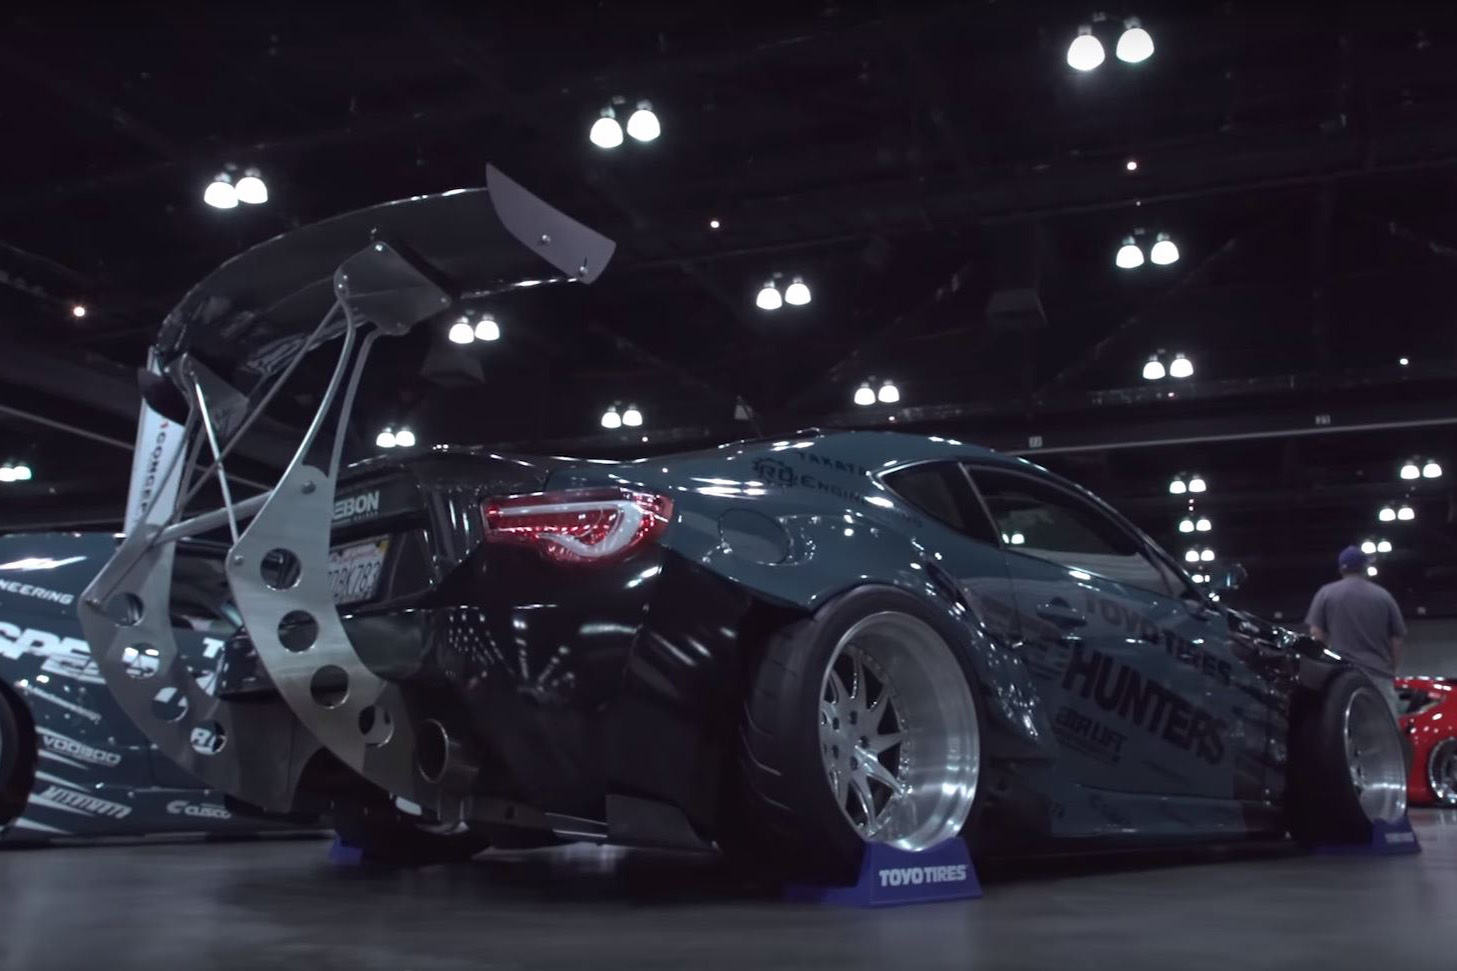 Video: Autocon 2016 LA. Showcasing some of the best custom cars the